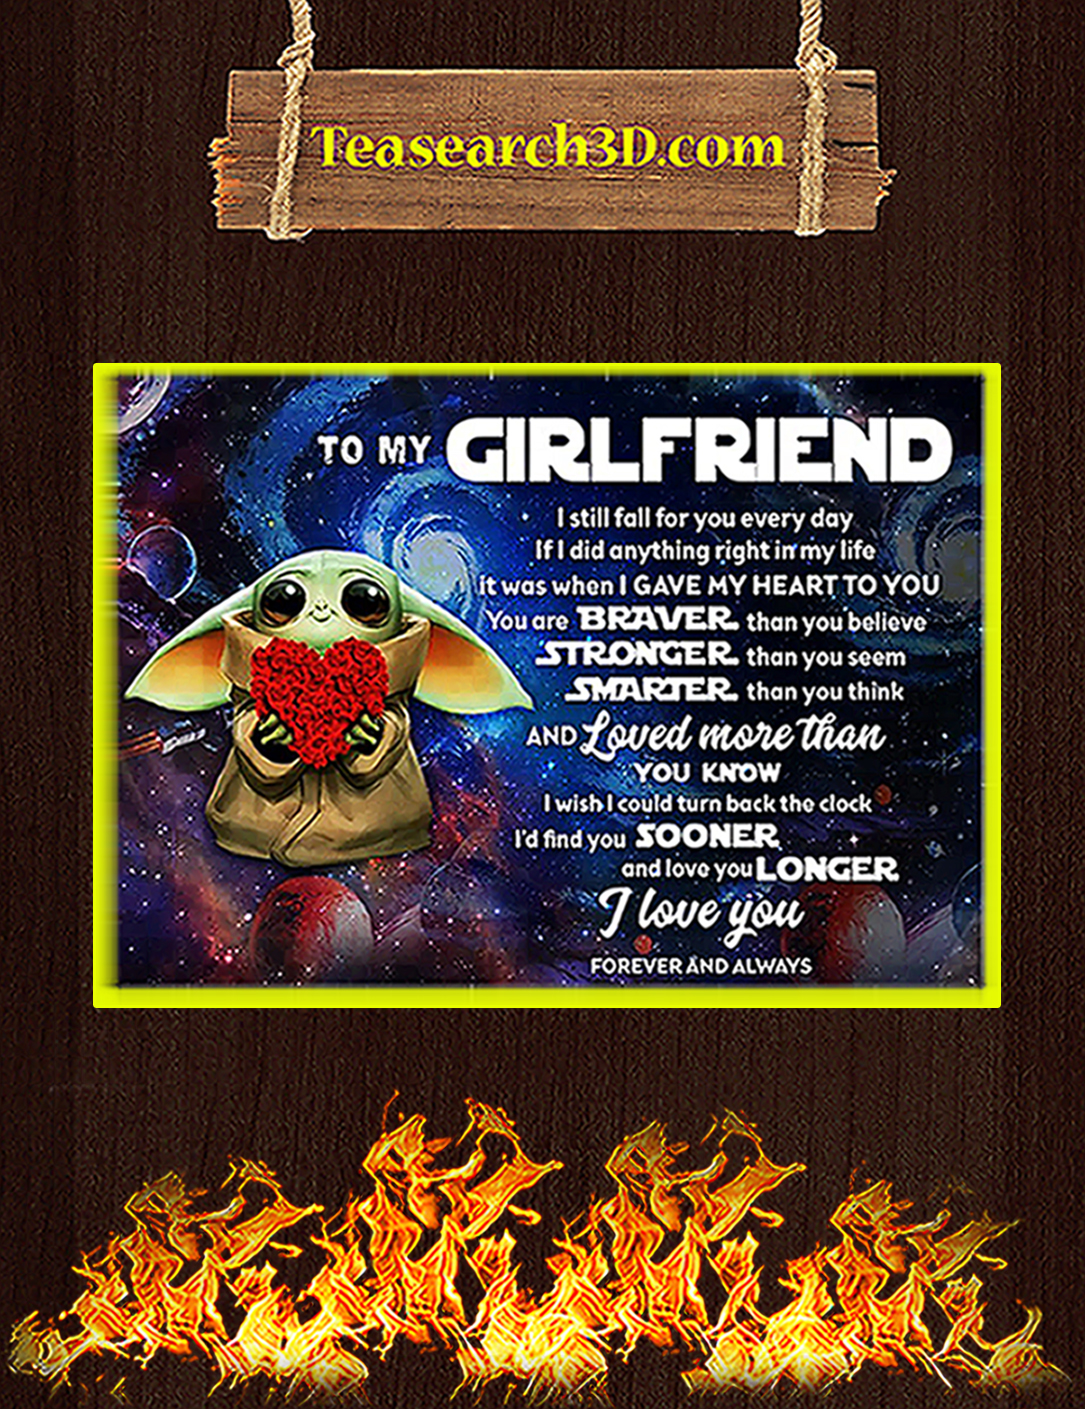 Baby yoda to my girlfriend poster A2